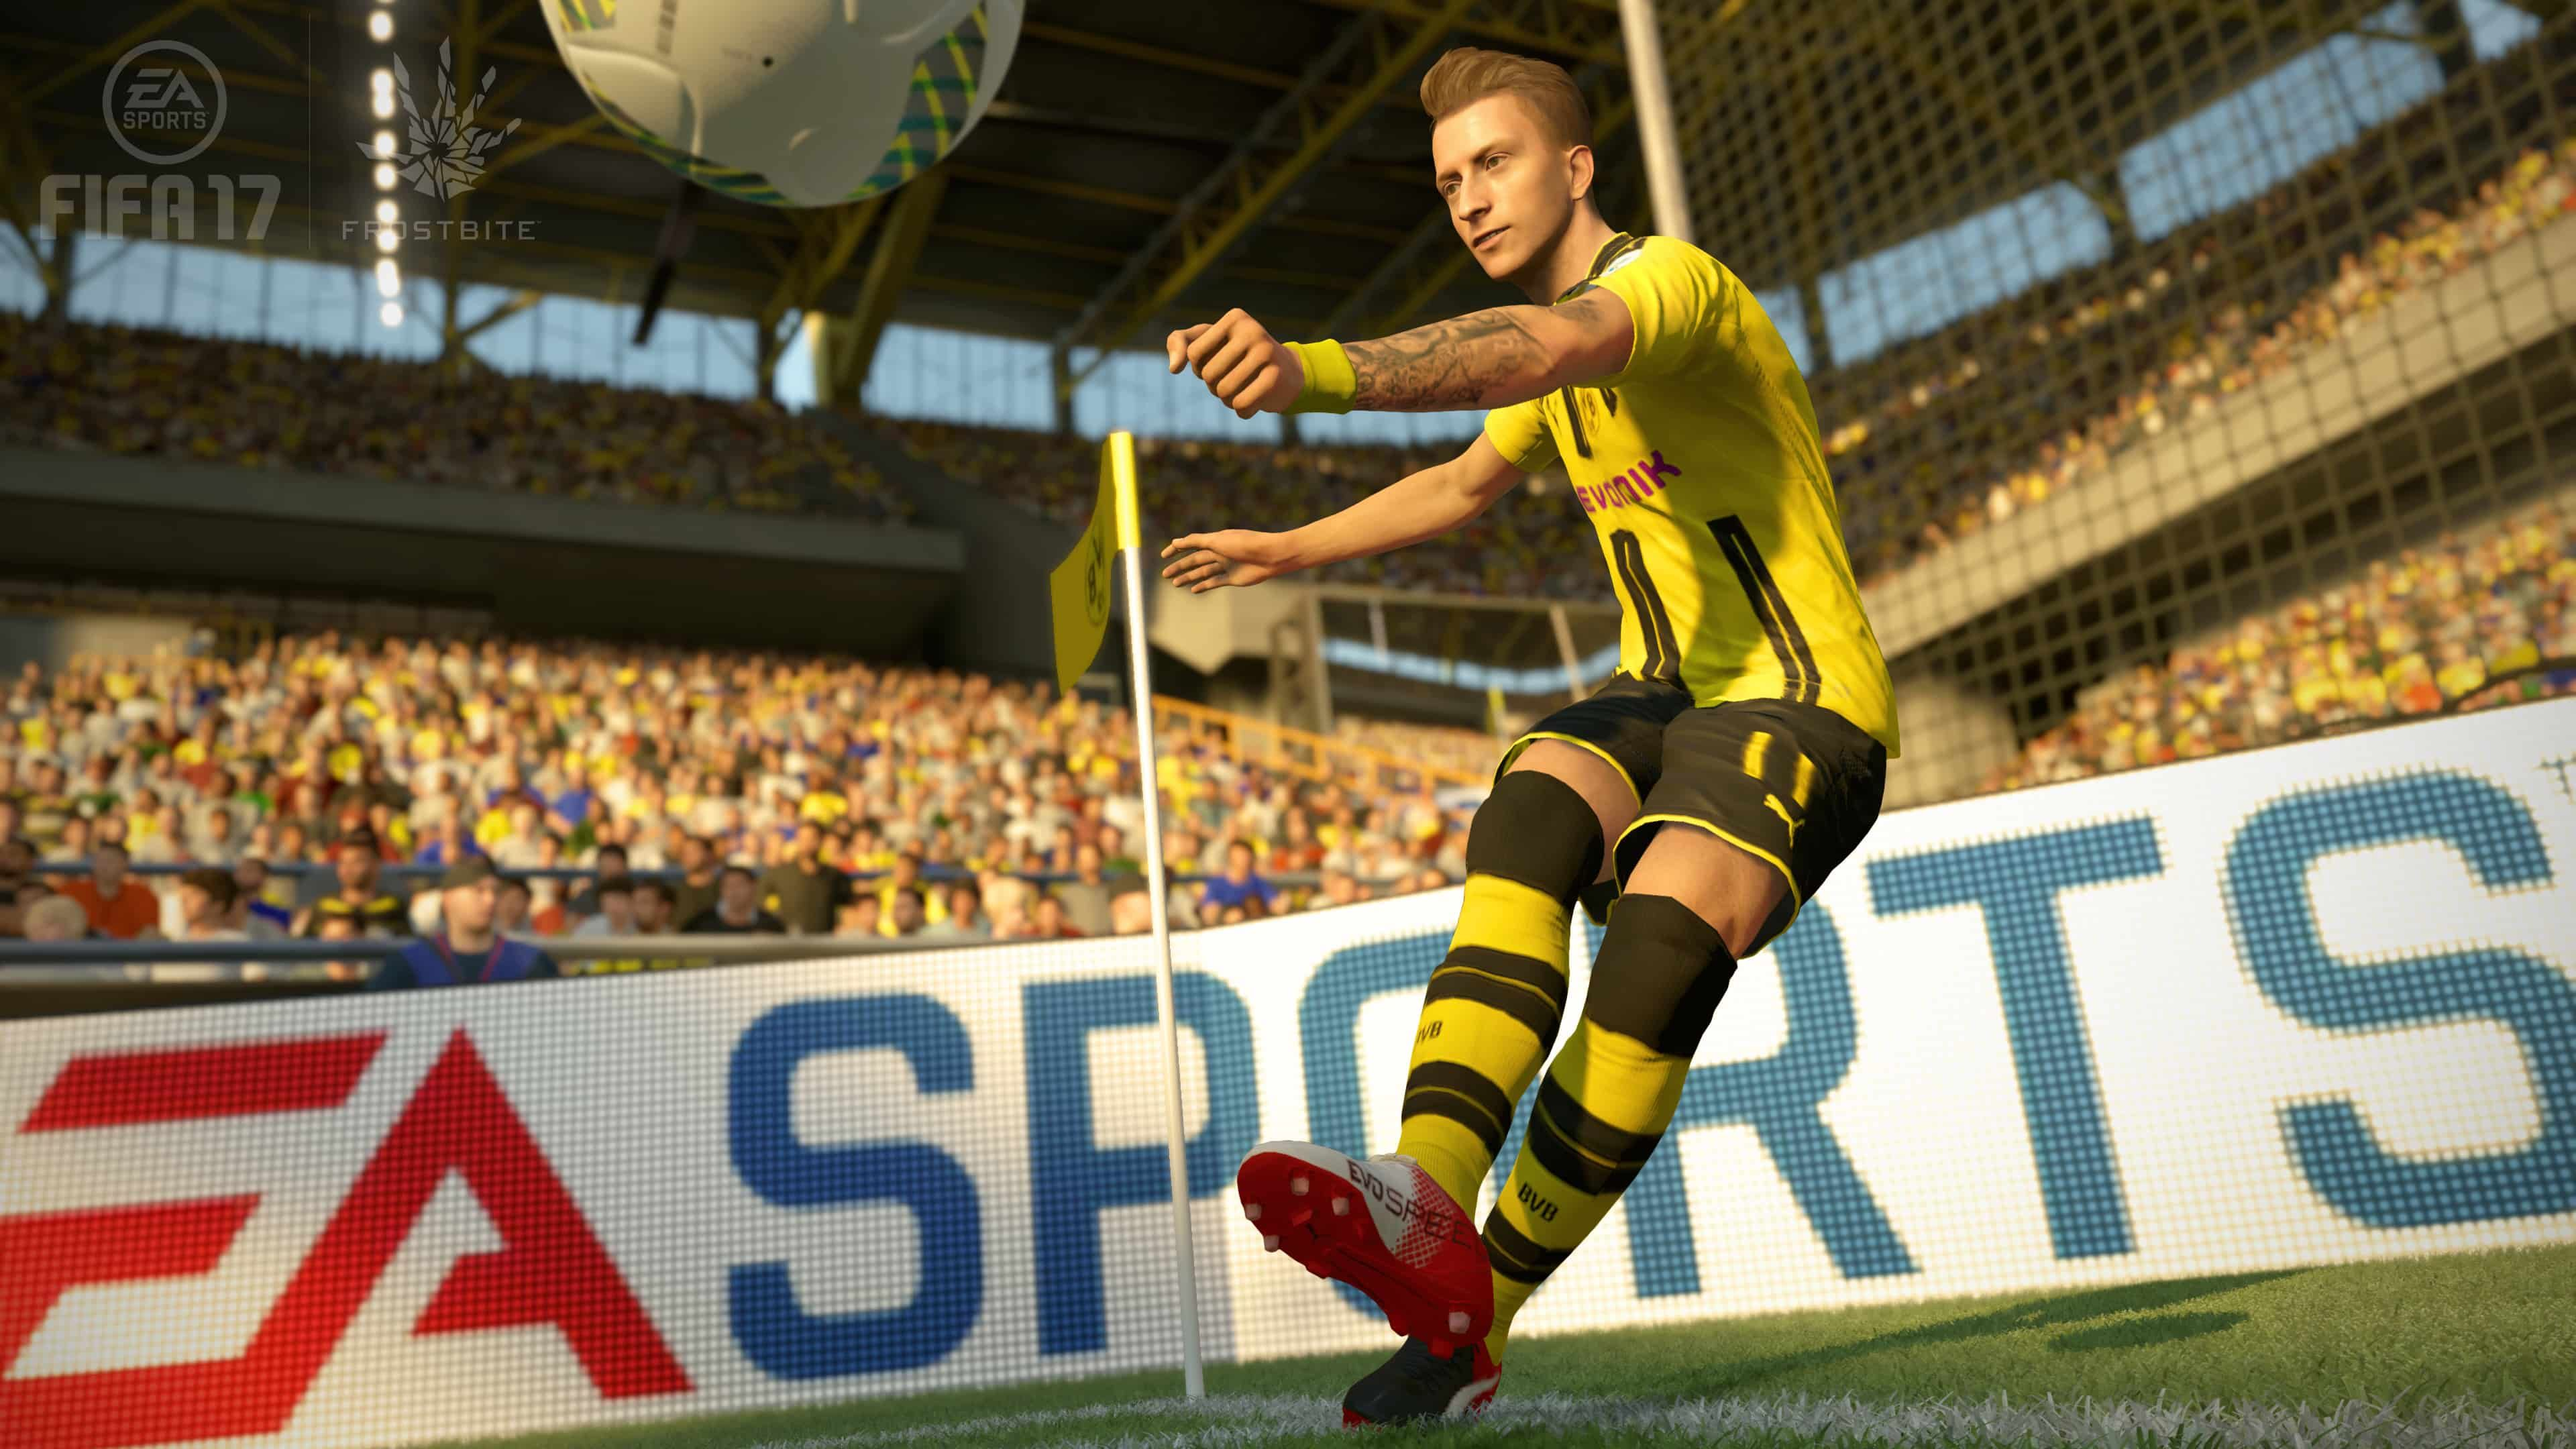 Fifa 17 Patch 1 08 Details And Patch Notes Http Www Sportsgamersonline Com Fifa 17 Patch 1 08 Available Now Fifa 17 Fifa Fifa Ultimate Team